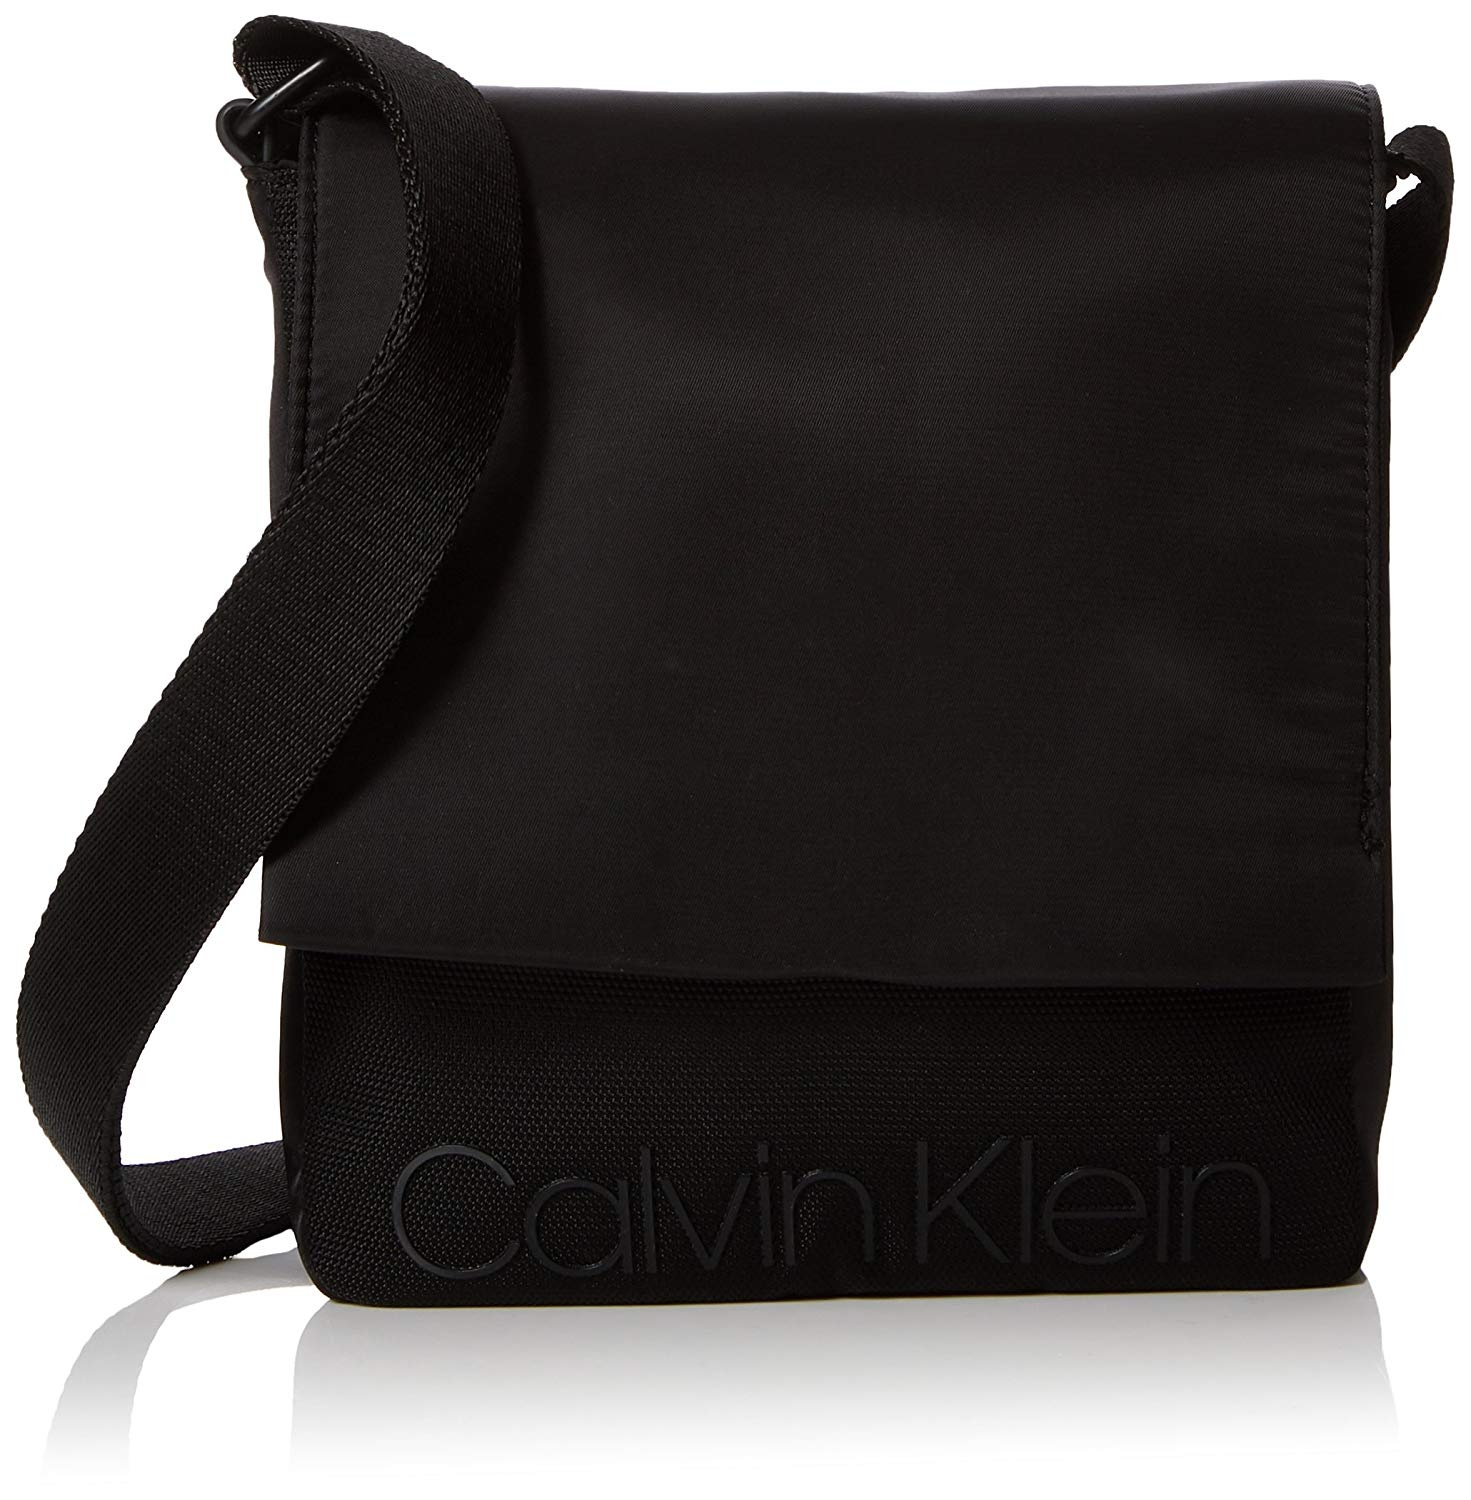 041d2327c89 Calvin Klein Jeans Shadow Reporter With Flap, Men's Shoulder Bag, Black,  5x22x19 cm (B x H T) by Calvin Klein Jeans - Shop Online for Bags in  Australia